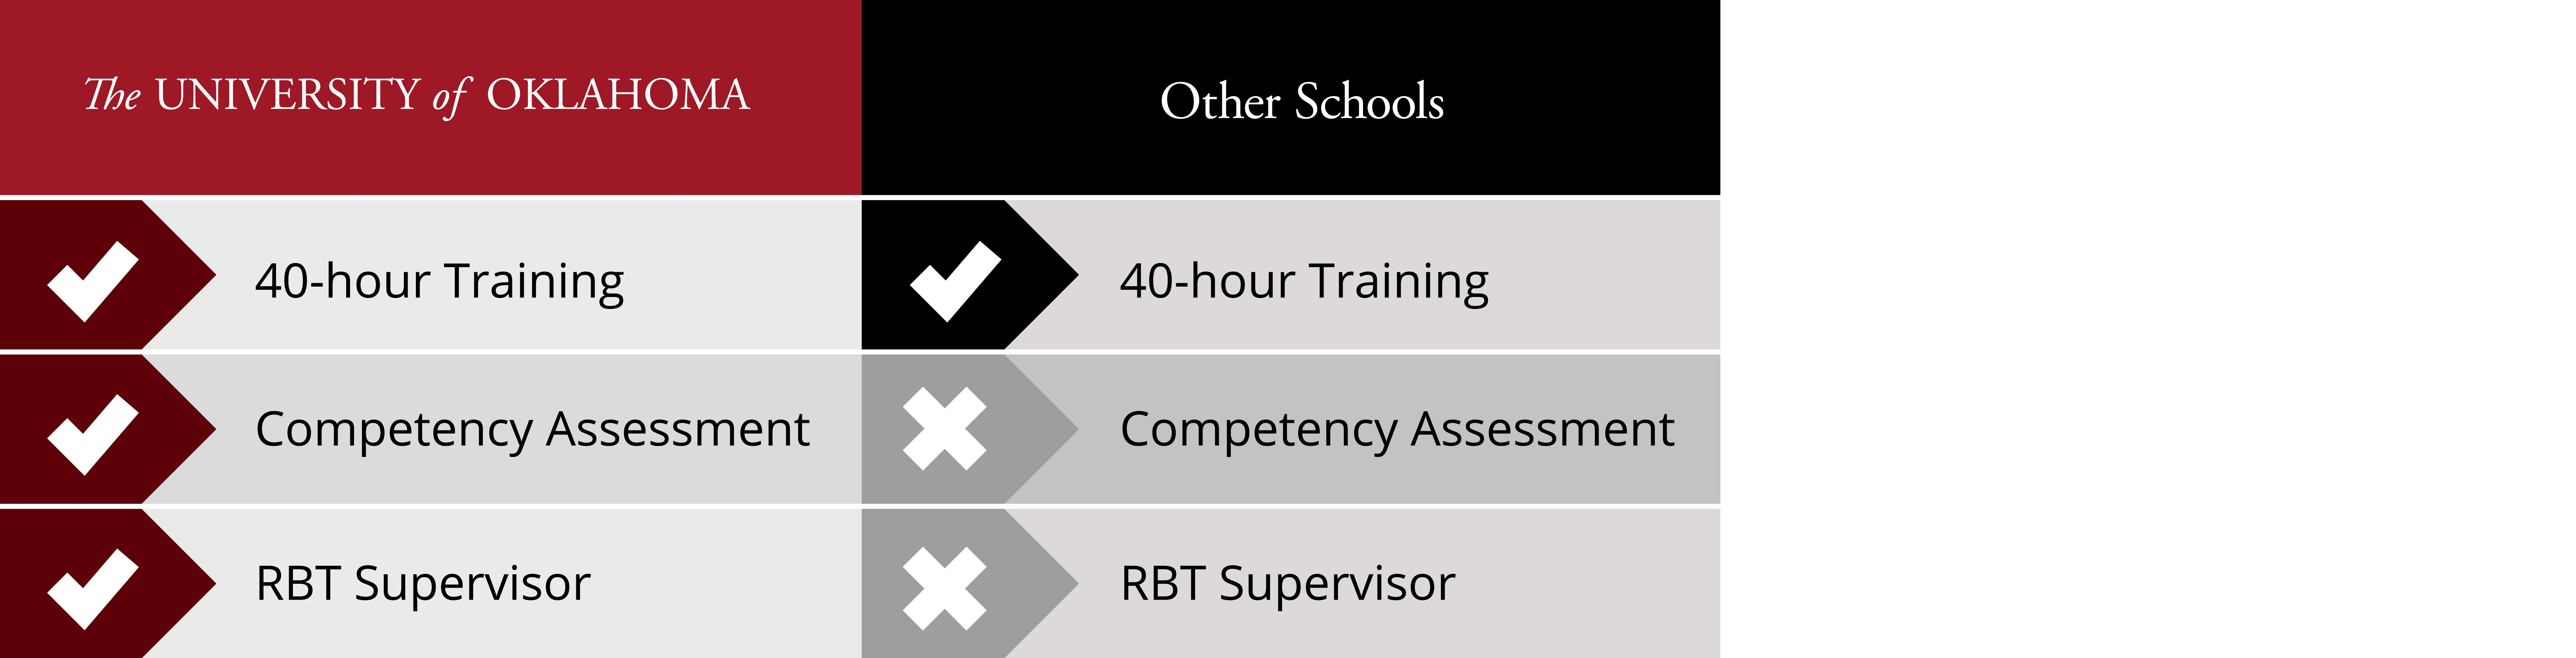 The University of Oklahoma: 40-hour training, competency assessments, and RBT supervisor. Other Schools: 40-hour training. No competency assessment or RBT supervisor.